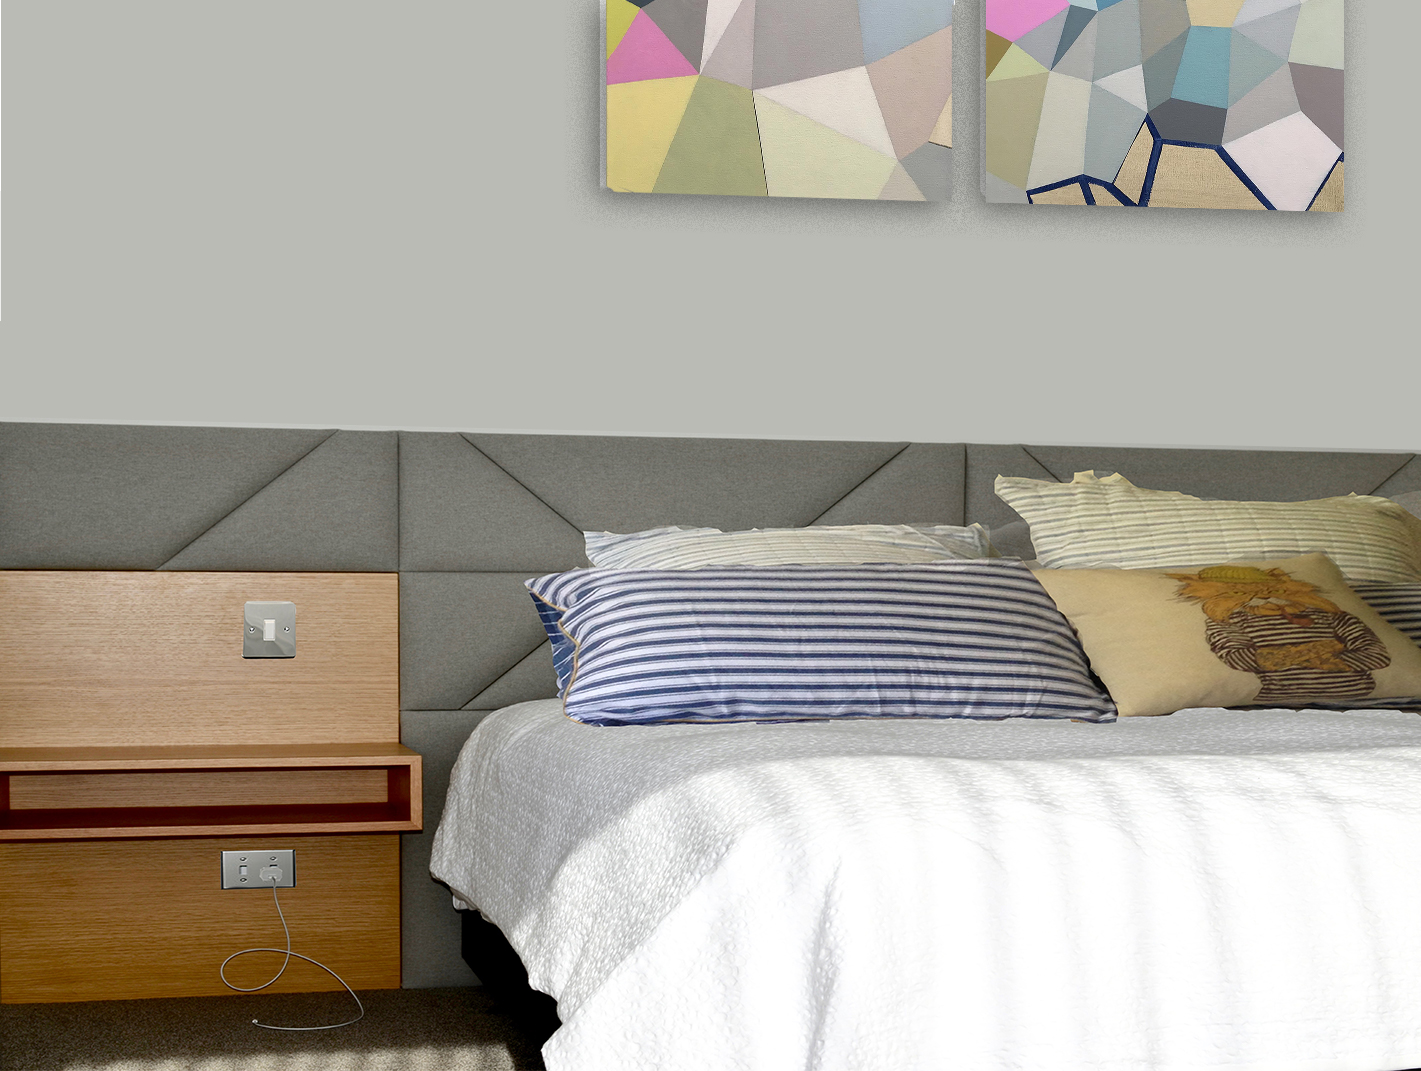 Modern custom designed 'Headboards' with bespoke cabinetry. St.Heliers Bay Auckland, New Zealand. Artwork copyright, Wendy Kawabata.